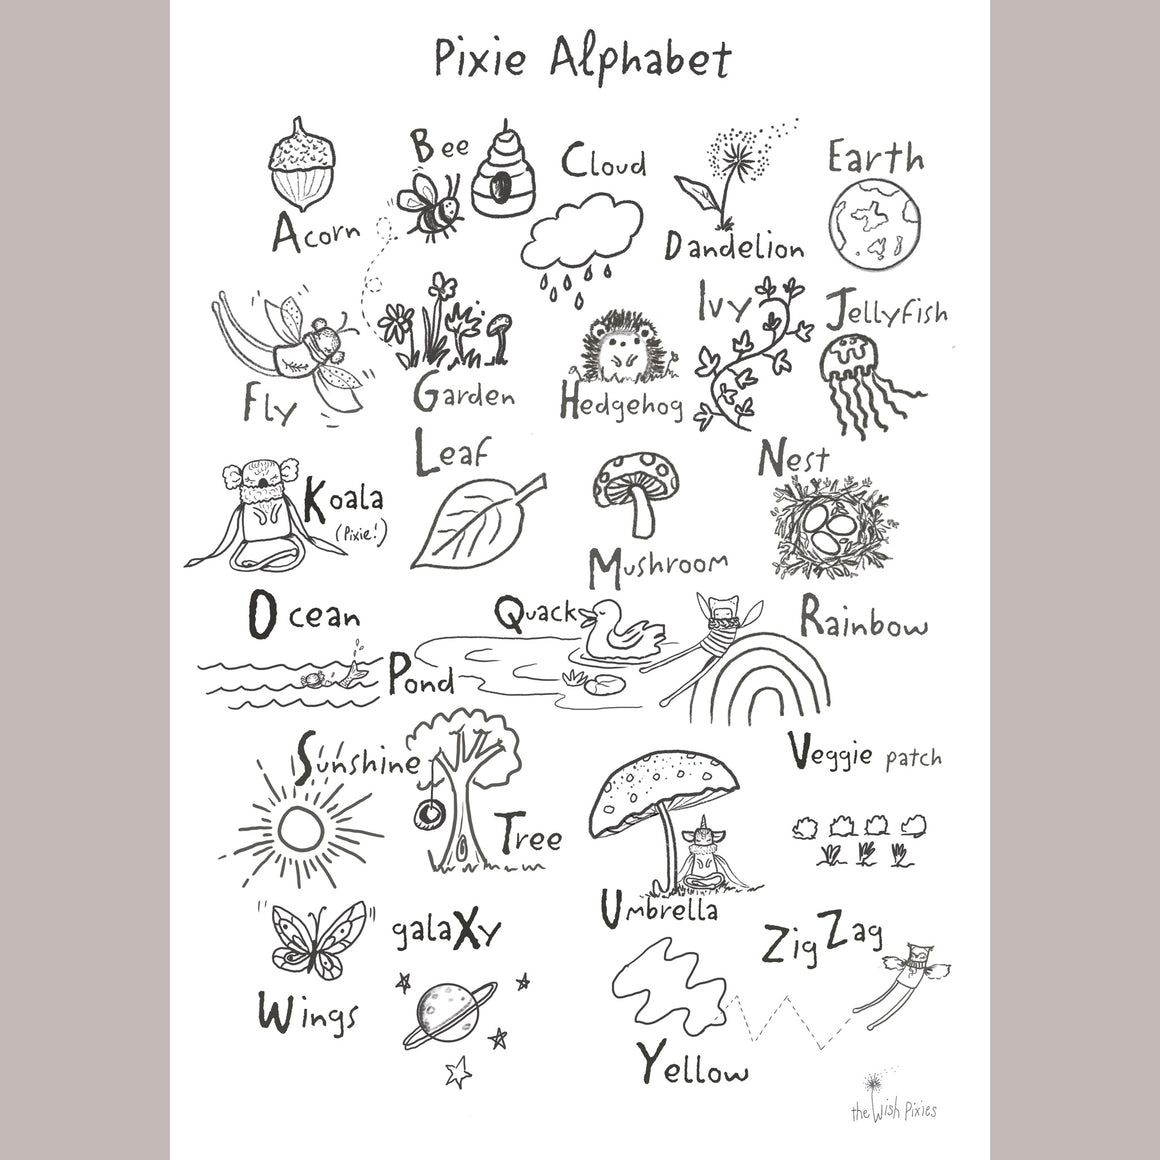 Pixie Alphabet Colouring Page